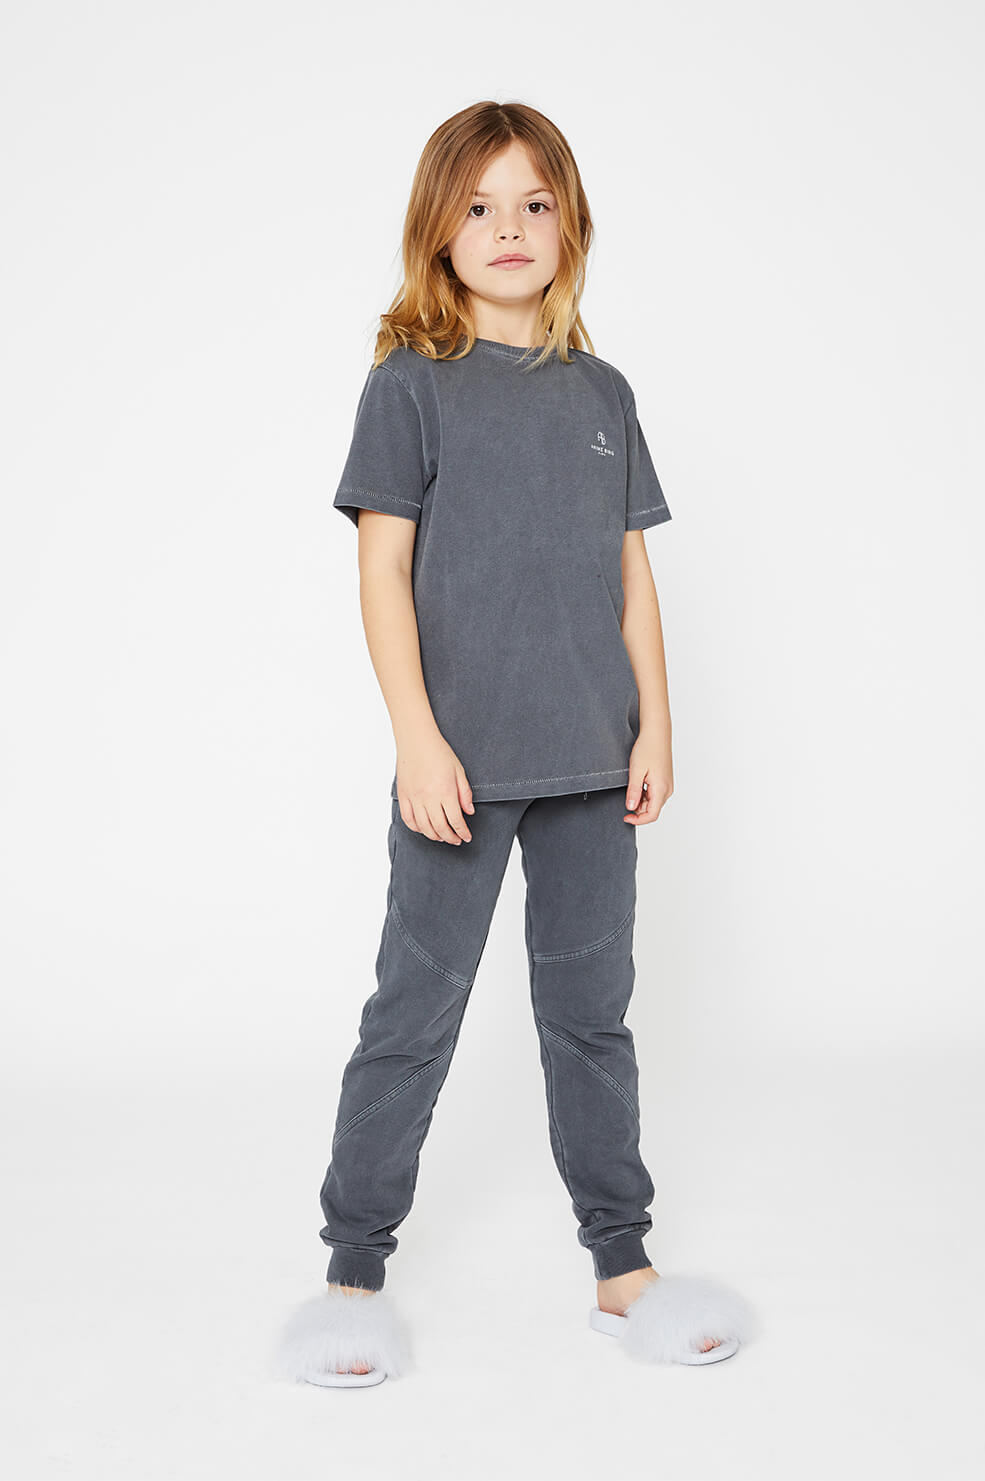 ANINE BING KIDS Mini Lili Tee - Washed Indigo